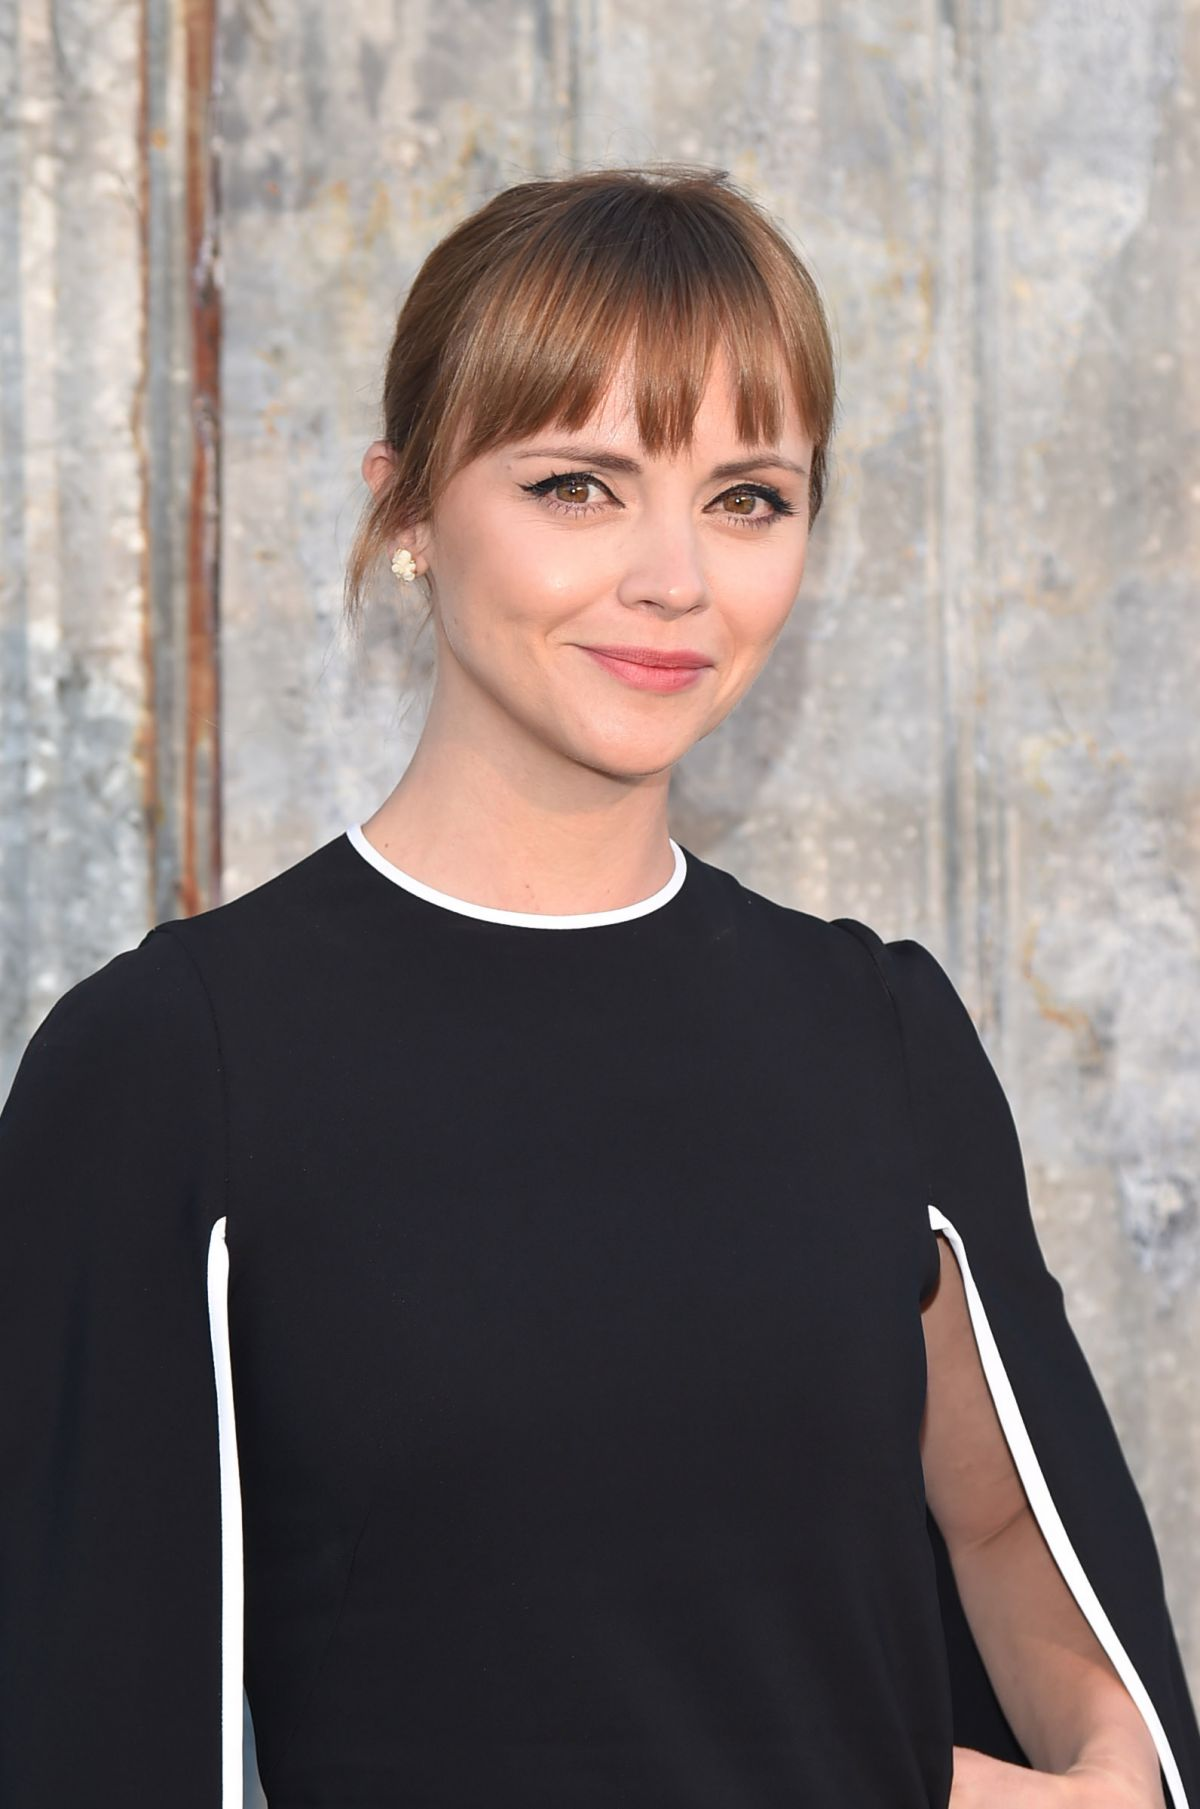 CHRISTINA RICCI at Givenchy Fashion Show in New York 09/11/2015 ... Christina Ricci